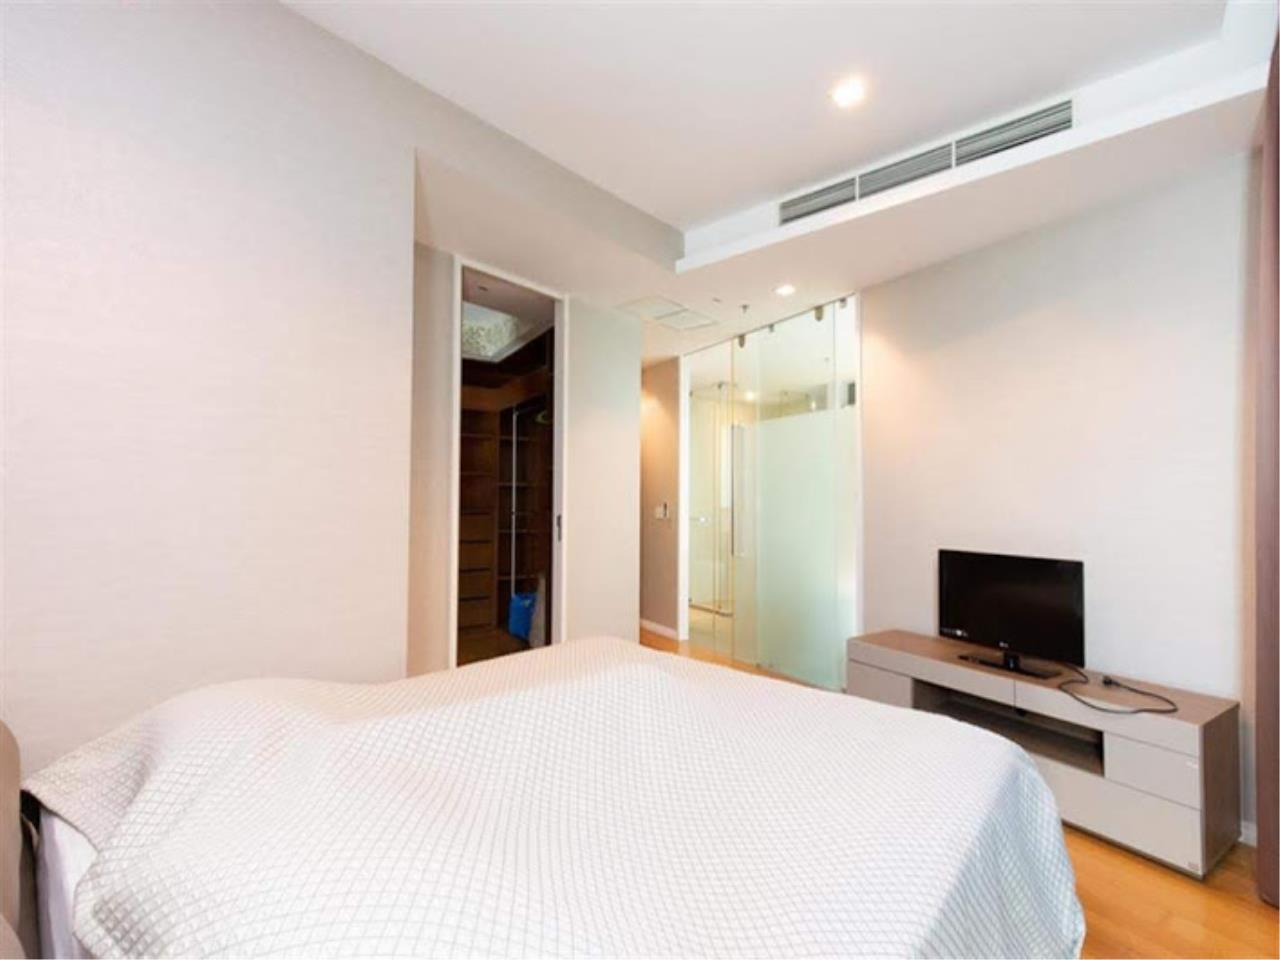 Bestbkkcondos Agency's The River - 233,8 sqm - For Sale : 52 000 000 THB - 3 Bedrooms 33